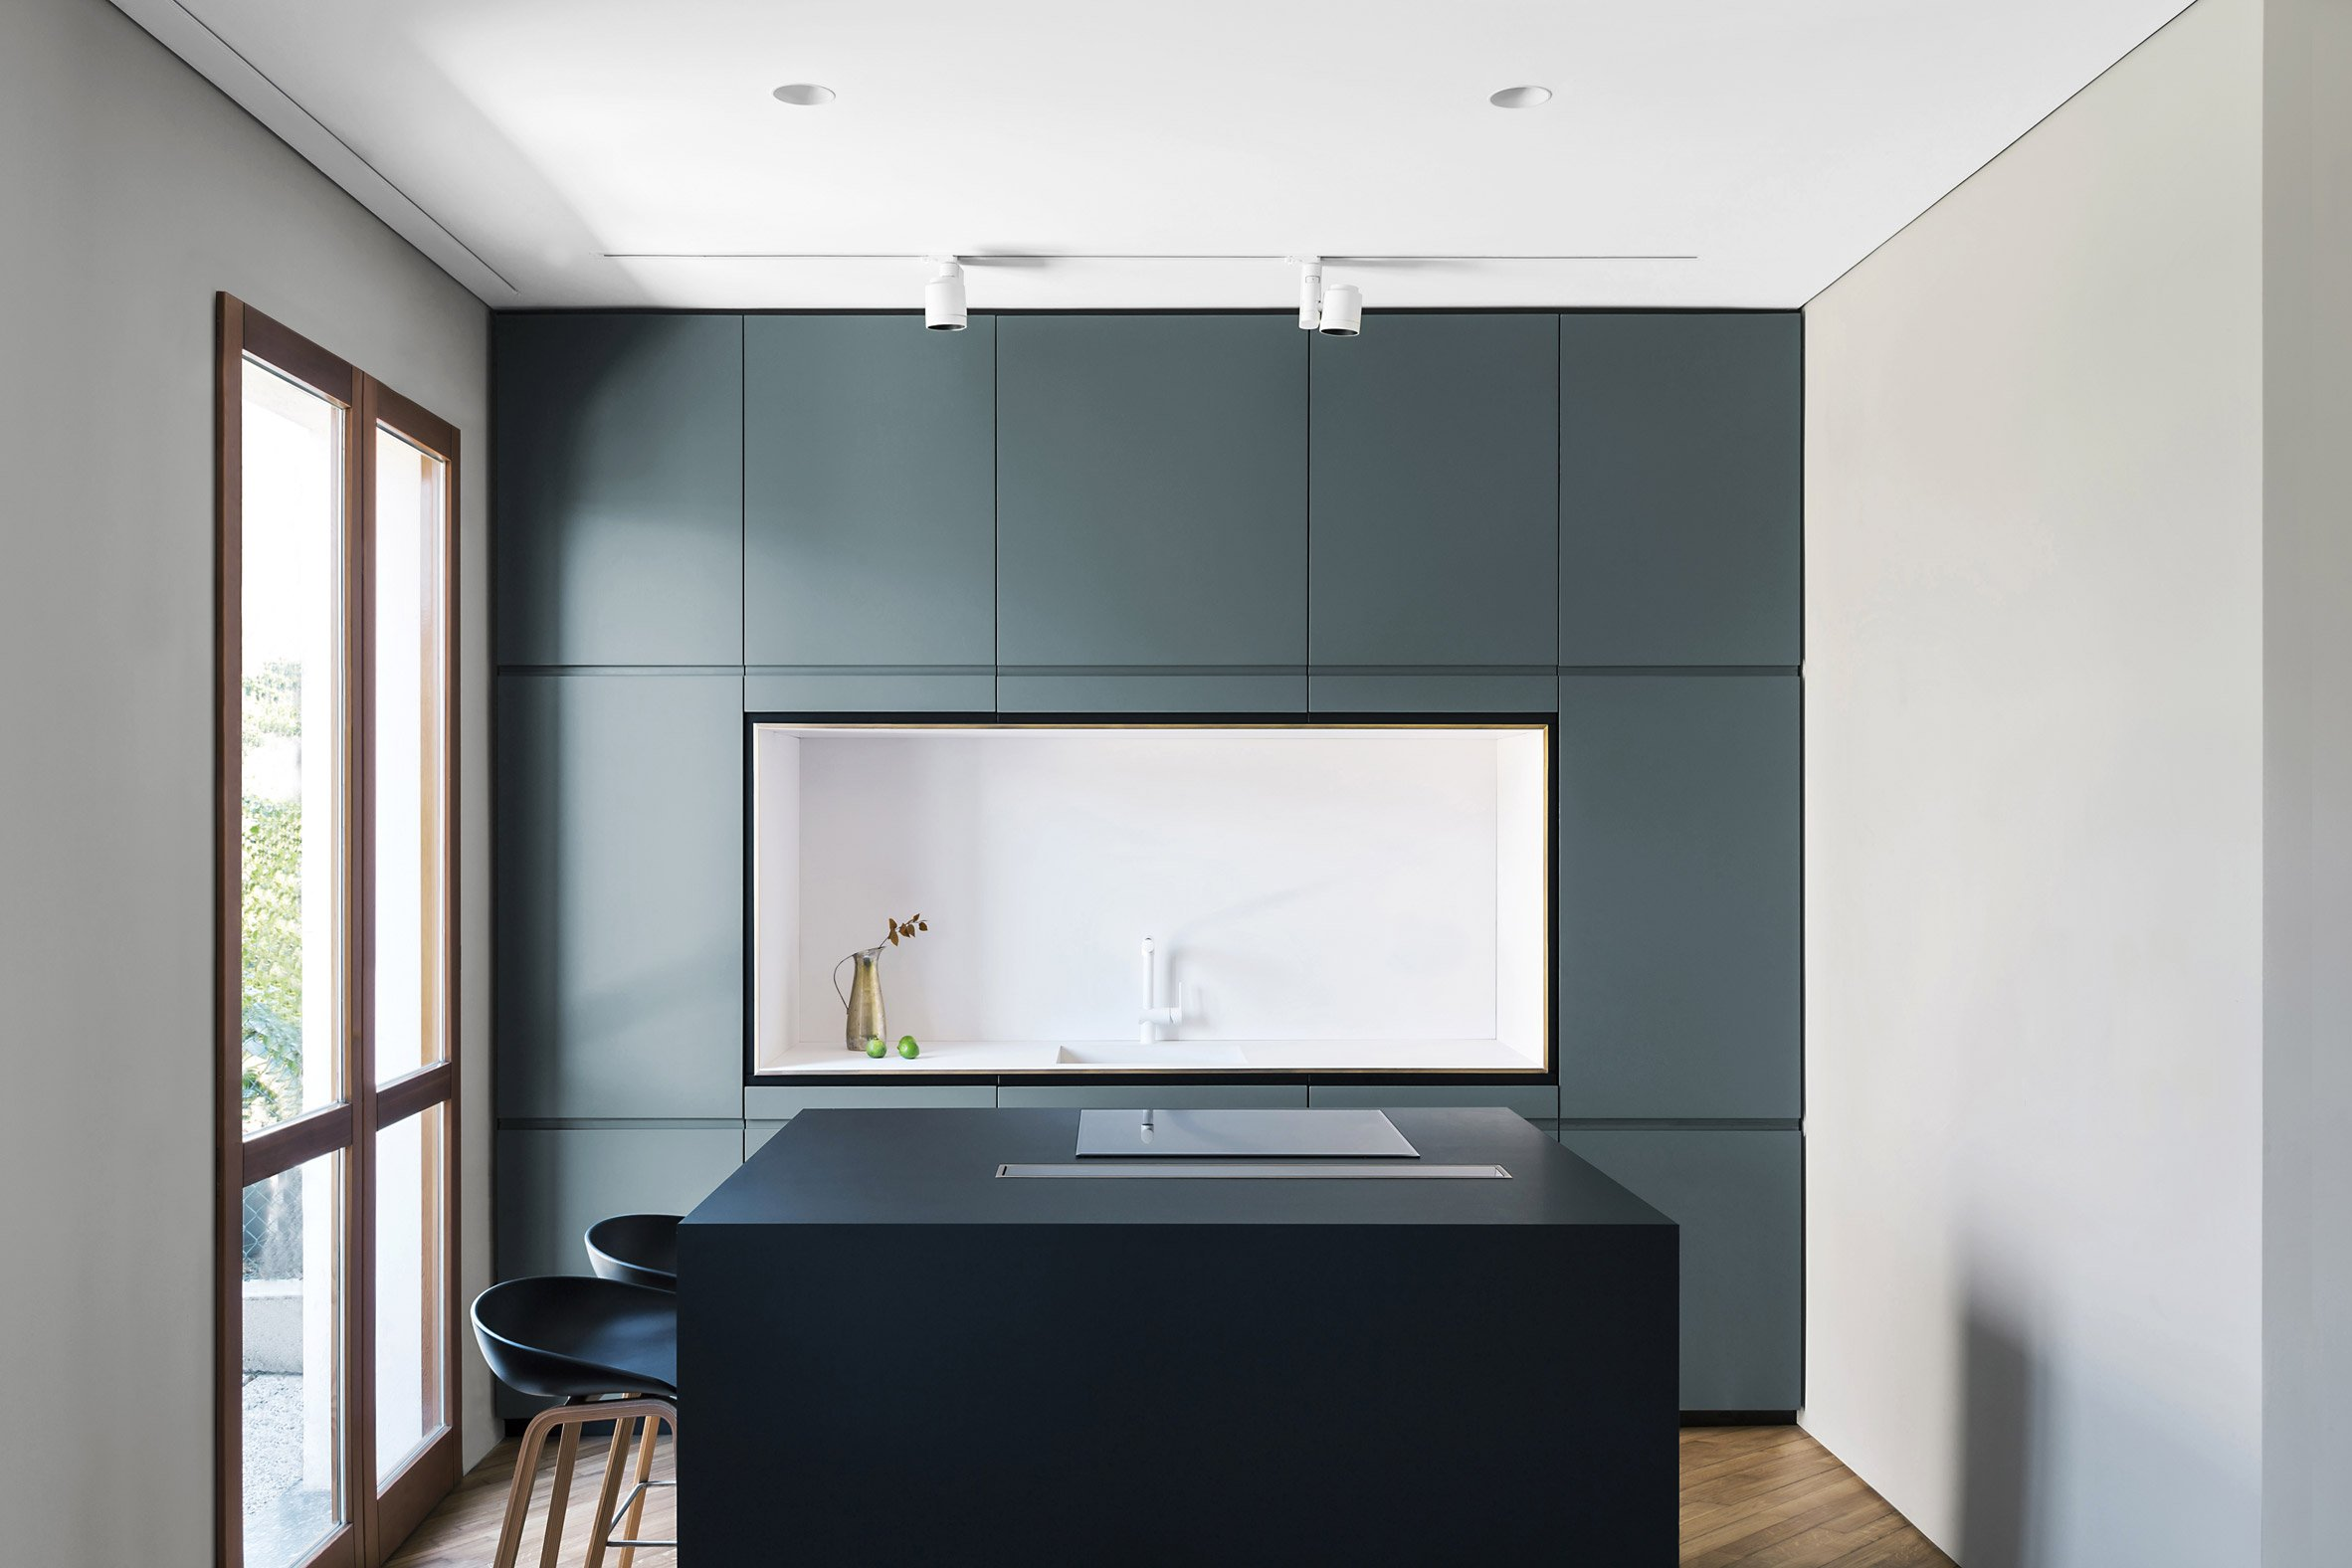 Milan home renovation hides stairwell and floor-to-ceiling cupboards